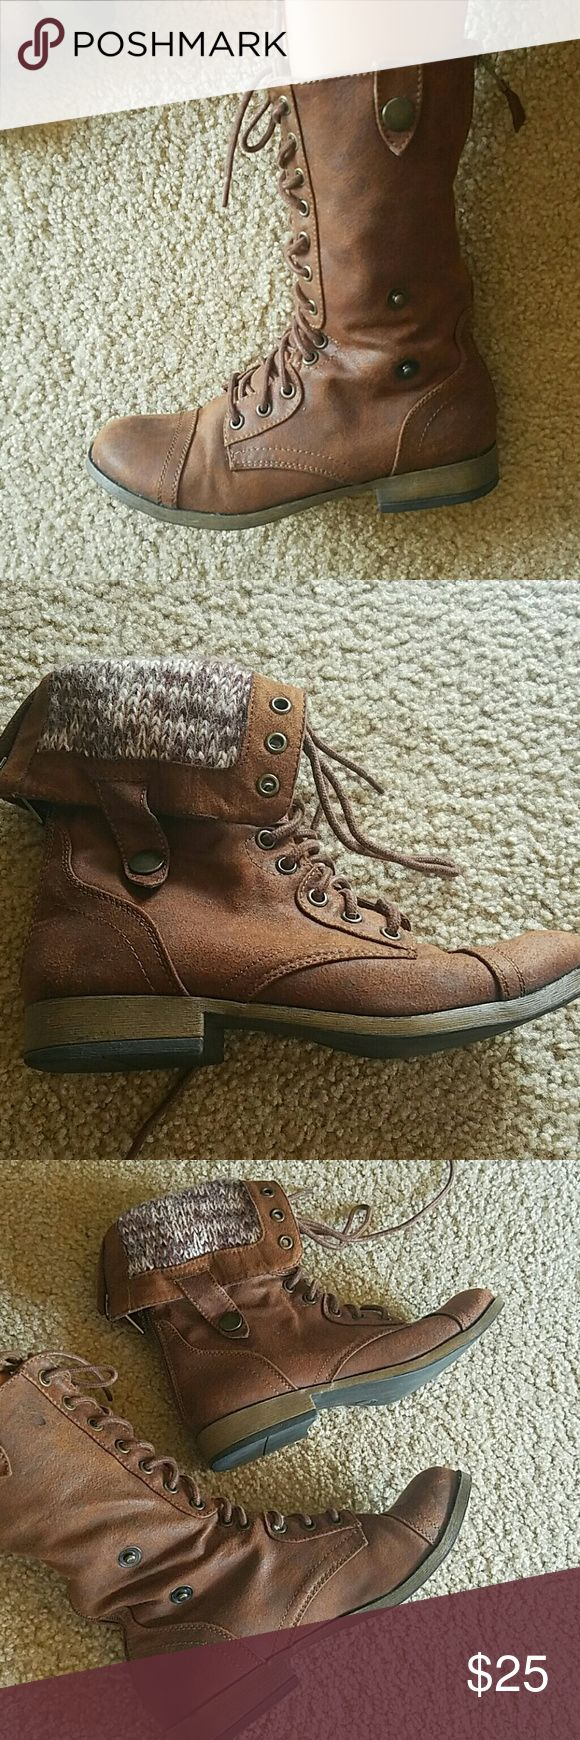 Womens combat boots Like new used once Mossimo Supply Co Shoes Combat & Moto Boots